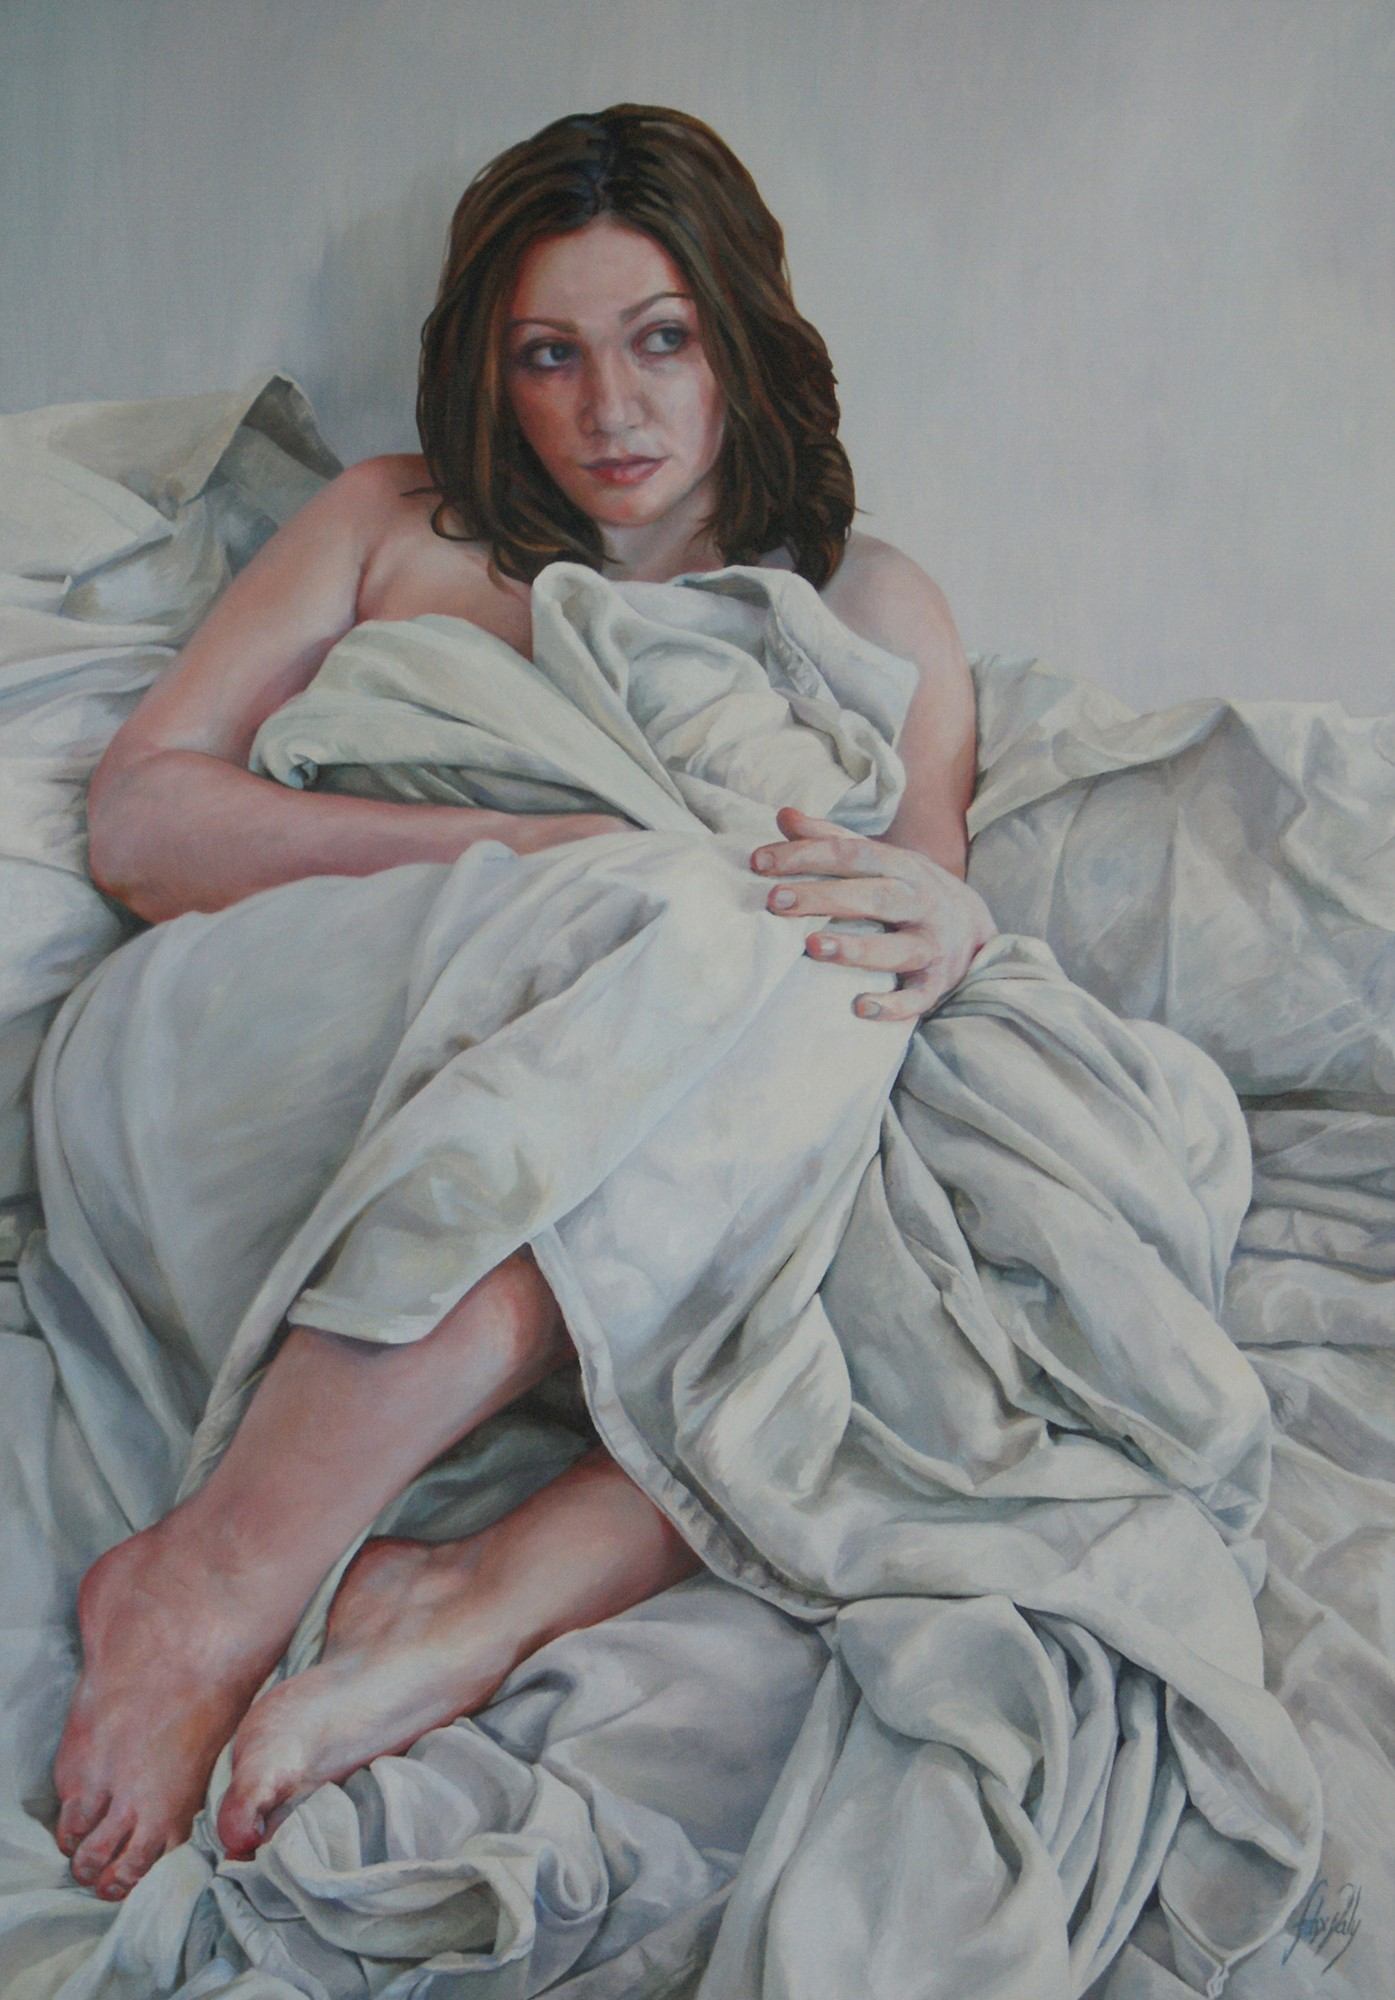 'Lindsay' by artist Felix Daly